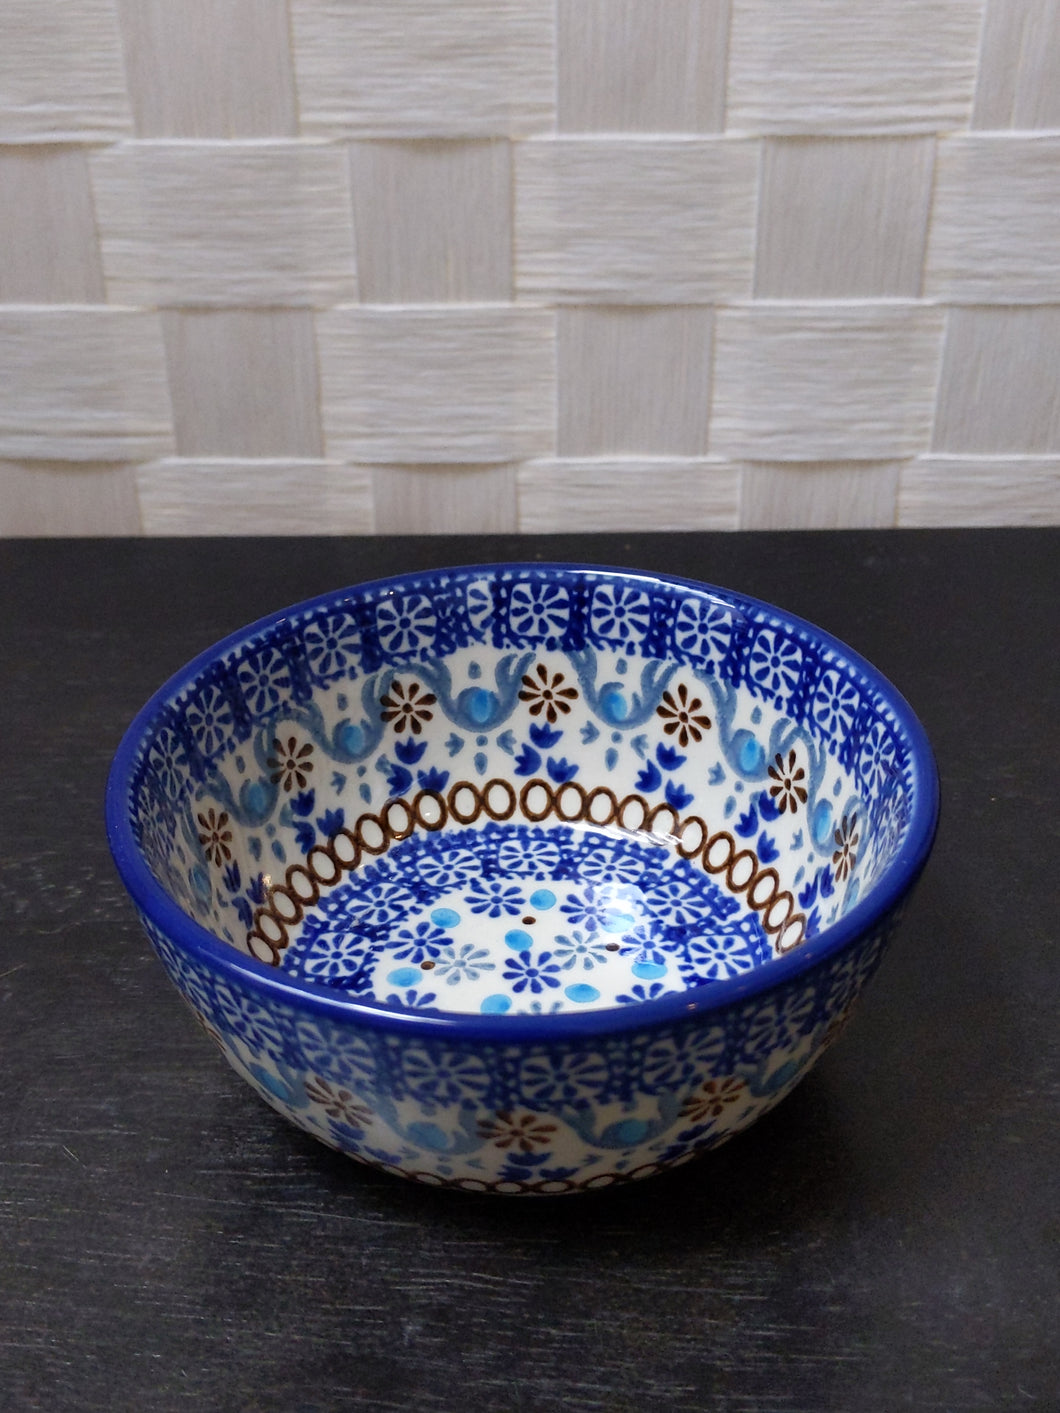 Ice cream bowl groovy blue